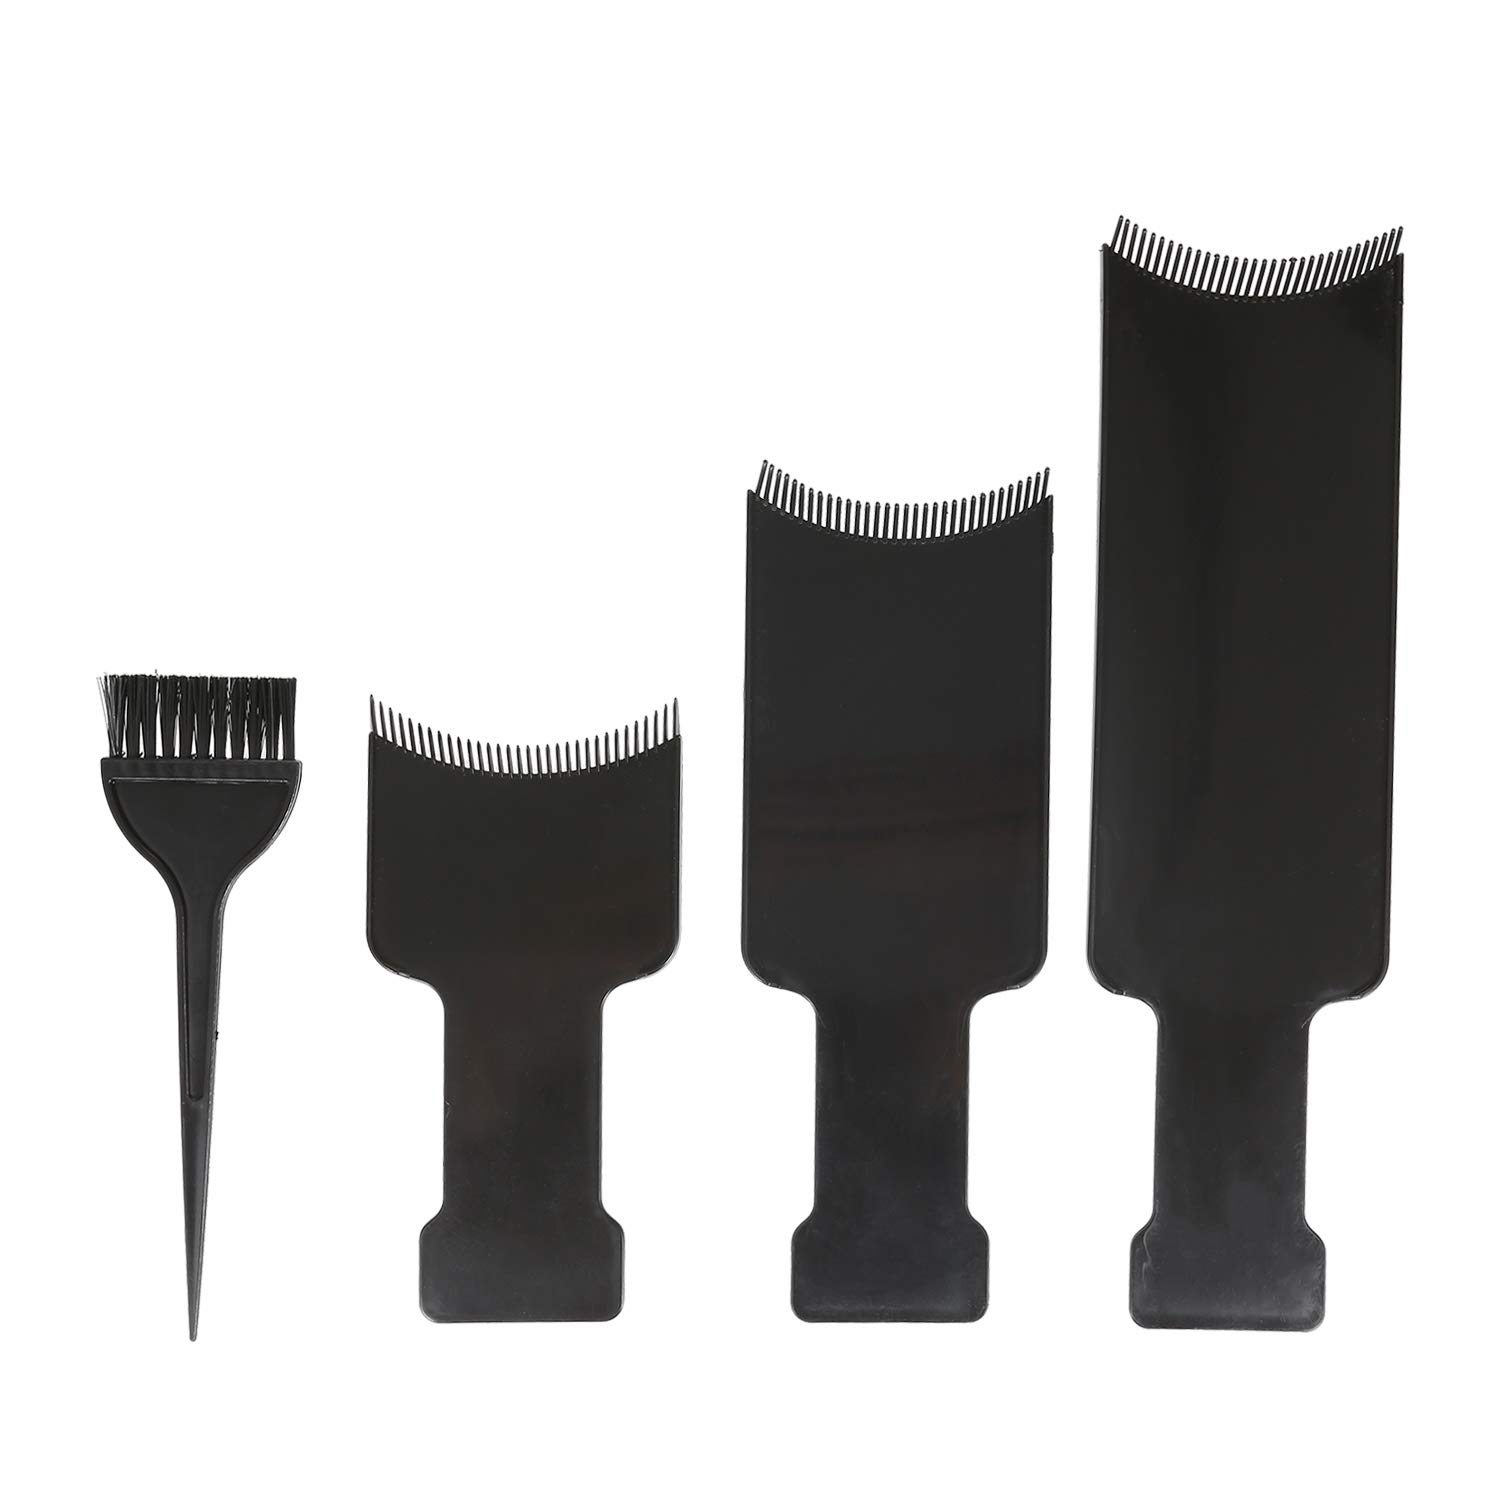 Balayage Highlighting Board, Anself 4pcs Hair Color Mixing Dye Kit Hair Dyeing Tint Brush Comb Tool for Highlights, Lowlights, Coloring, Dyeing Home & Salon Use Black